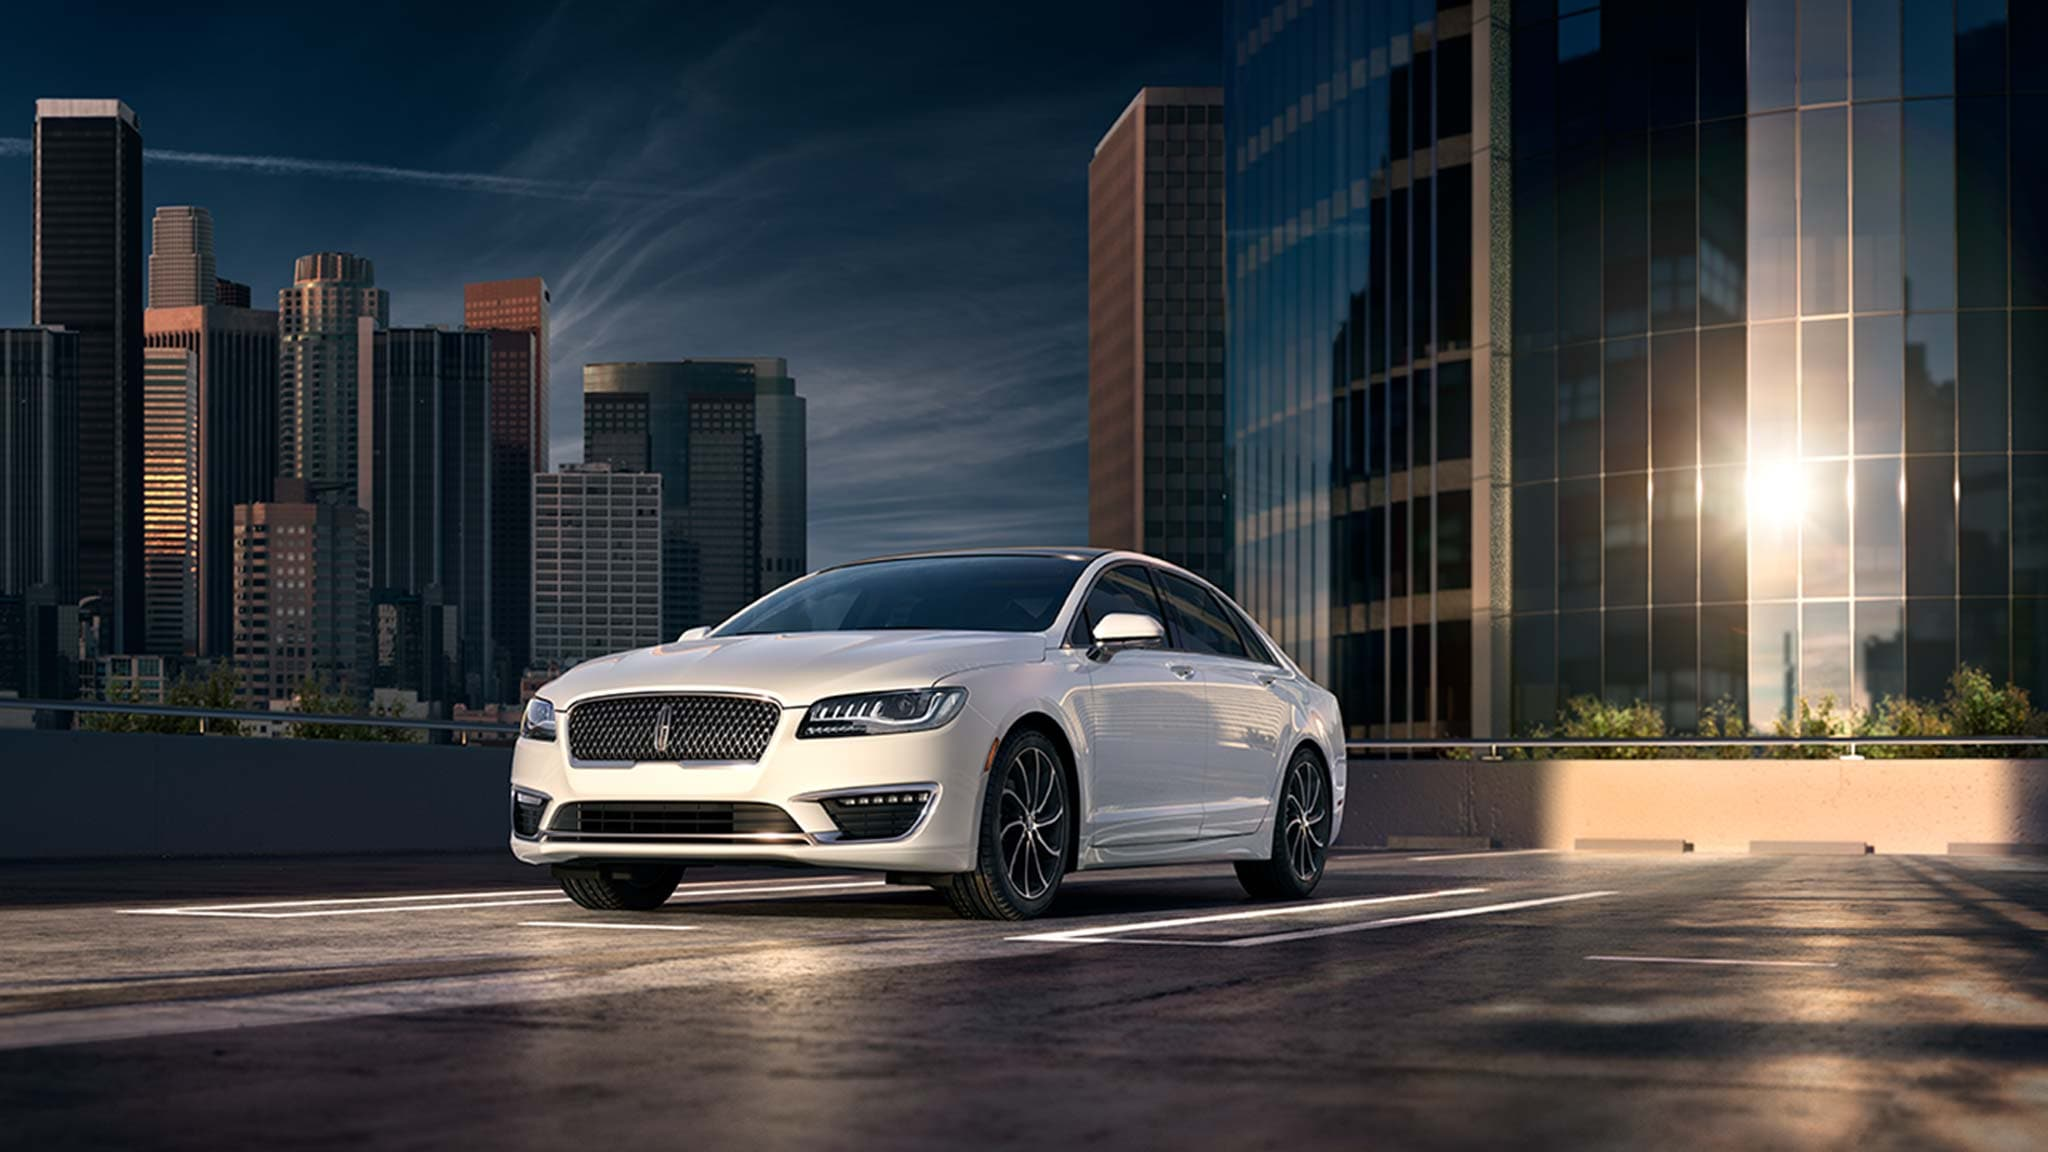 all new 2017 lincoln mkz at phil long lincoln in colorado springs. Cars Review. Best American Auto & Cars Review